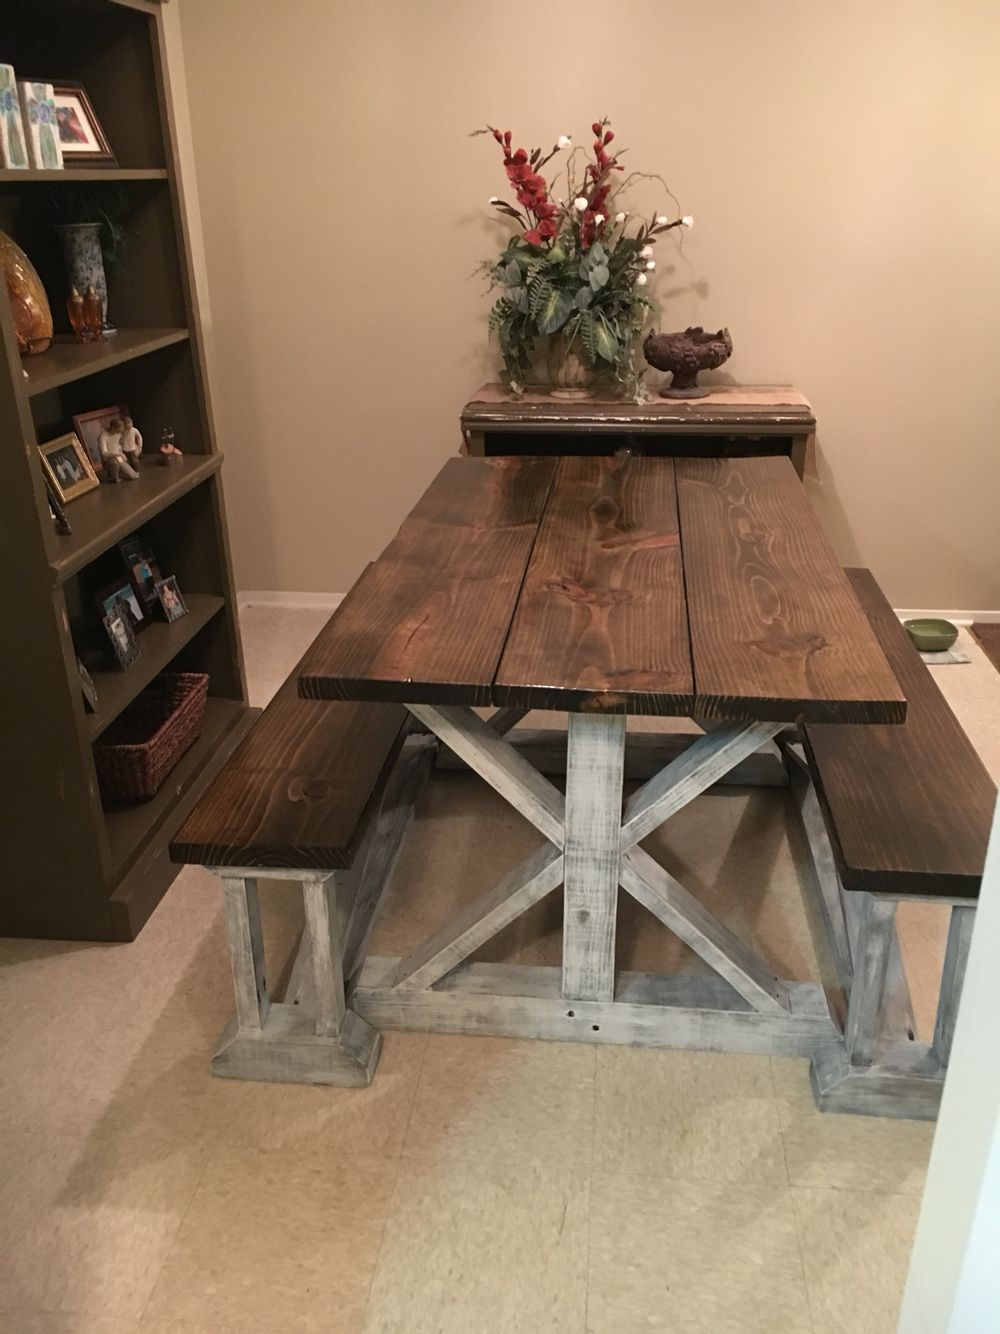 handmade farmhouse table with benches handmade furniture -  http://amzn.to/2iwpdj4 UPDBDWP